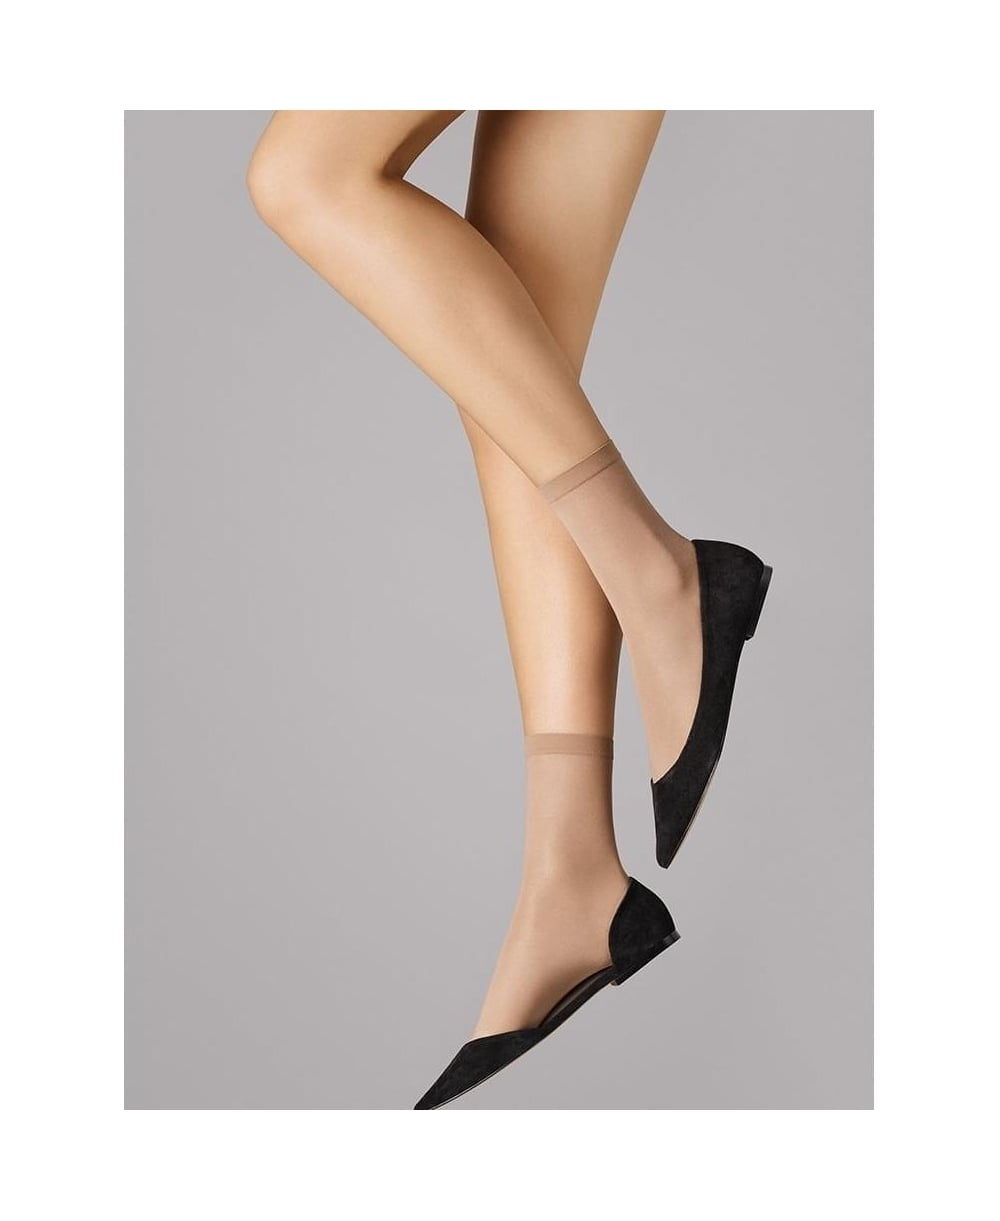 3f3ab0798 Wolford Satin Touch 20 Socks - Socks from luxury-legs.com UK